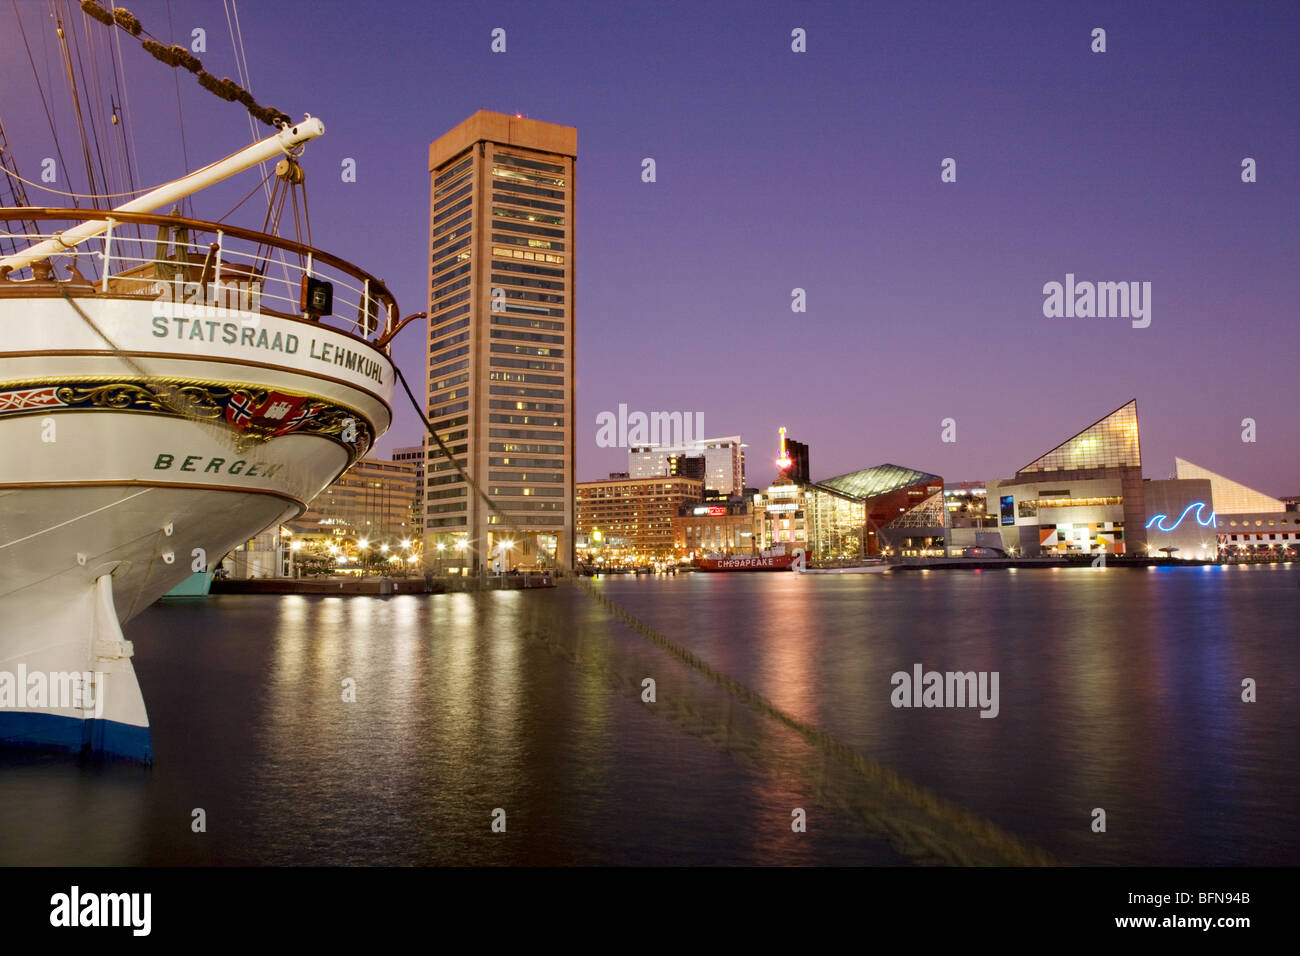 Tall ship visiting Inner Harbor, Baltimore, Maryland including National Aquarium and Pei building - Stock Image